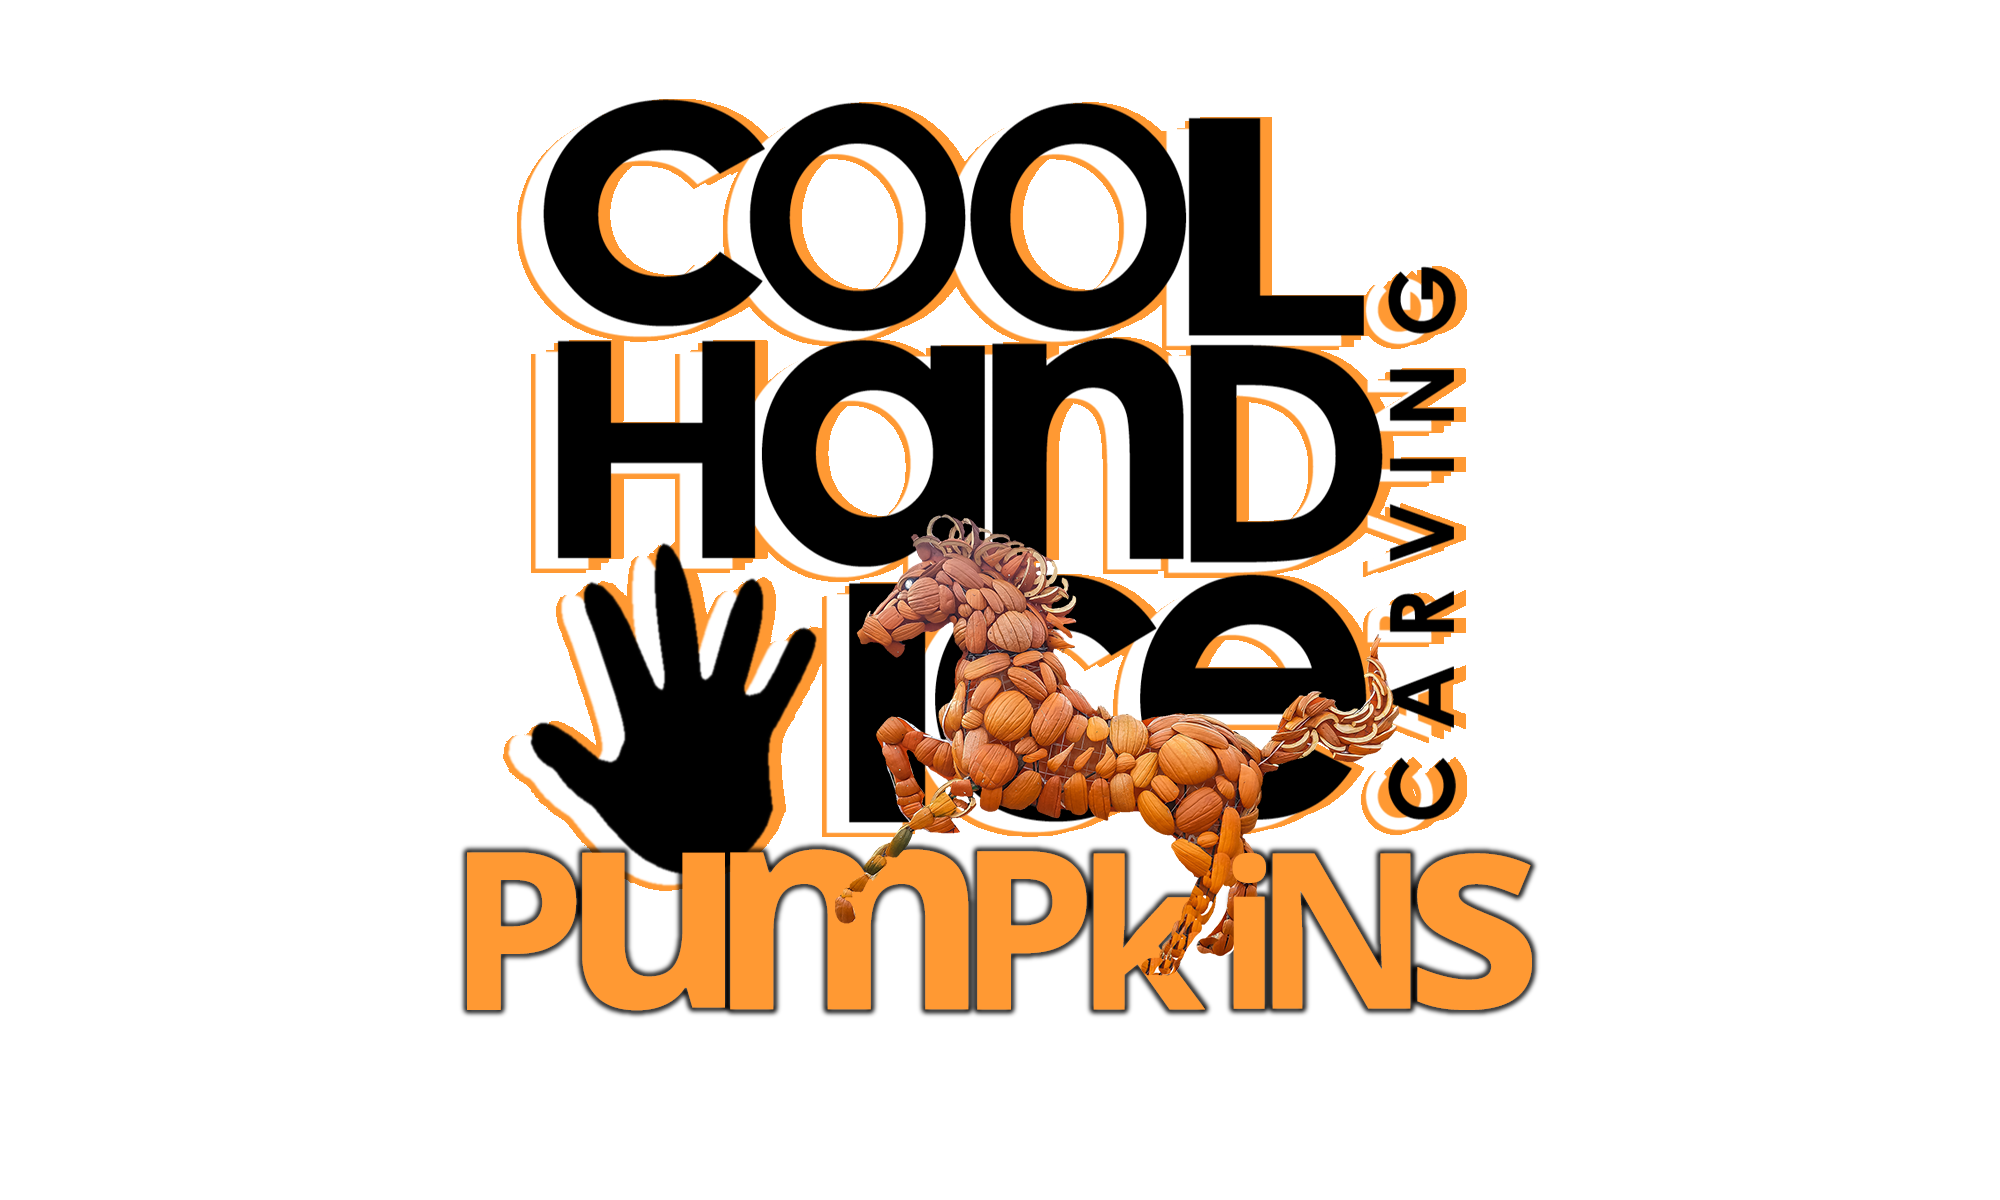 Cool Hand Ice logo pumpkins png